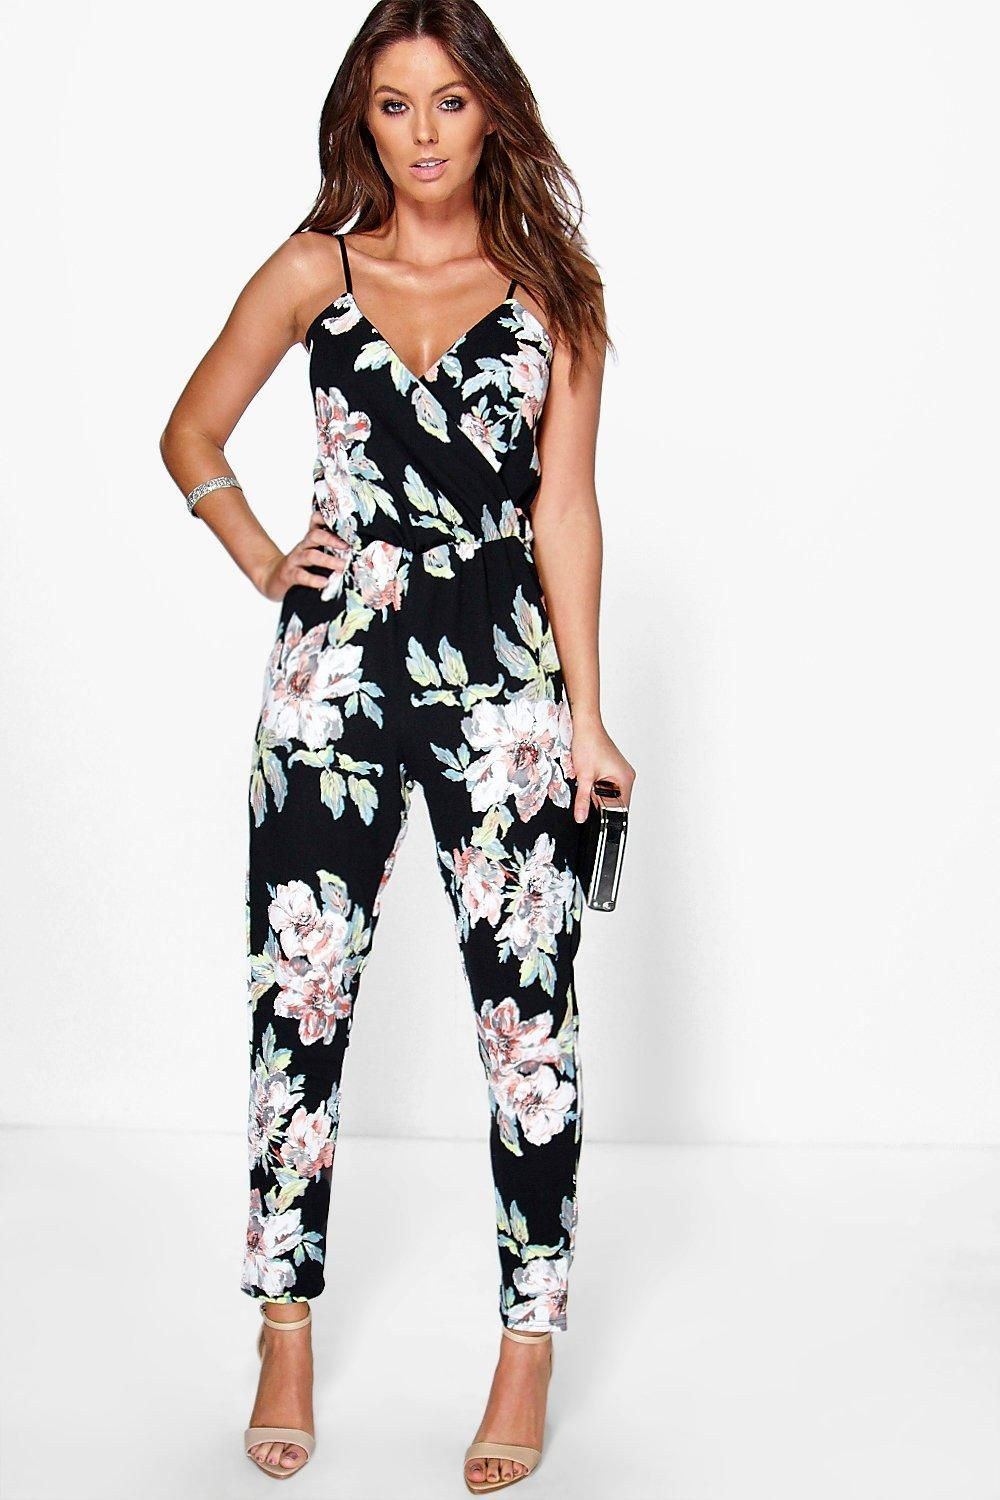 Excellent Not Only Are Pant Suits And Skirt Suits Absolutely Appropriate, But With Jumpsuits And Pants Making Their Way To The Top Of Fashion Trends, Suits Are Actually A Popular Option Among Women Of All Ages Pant Suits Provide A Bit More Coverage